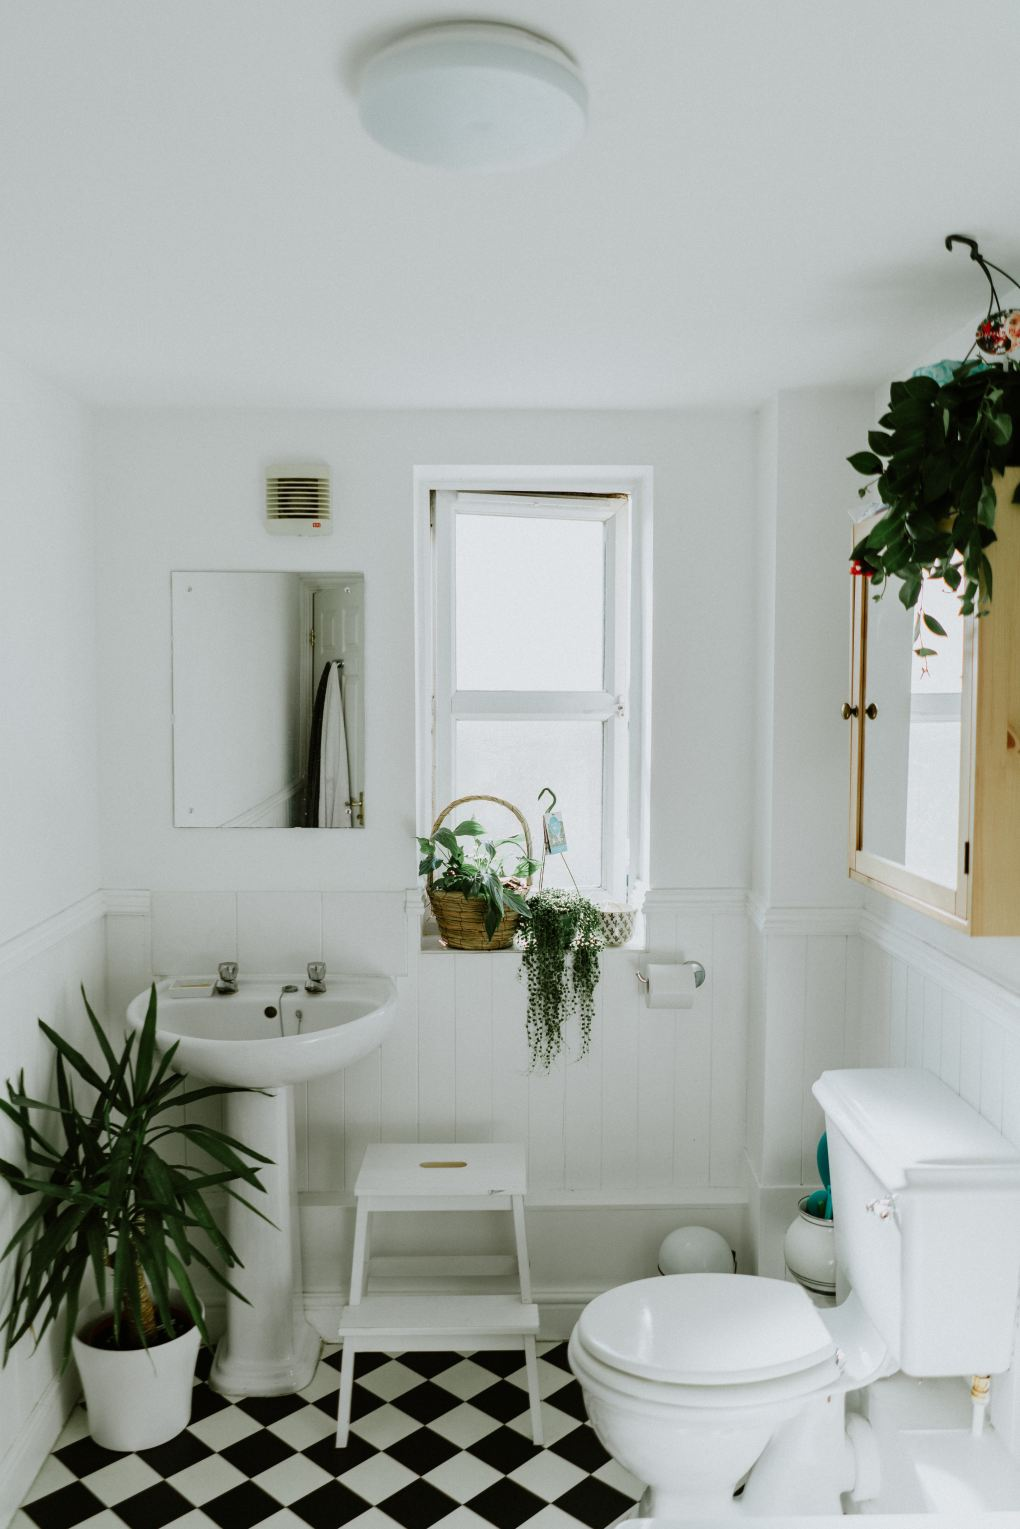 neglected areas of the home